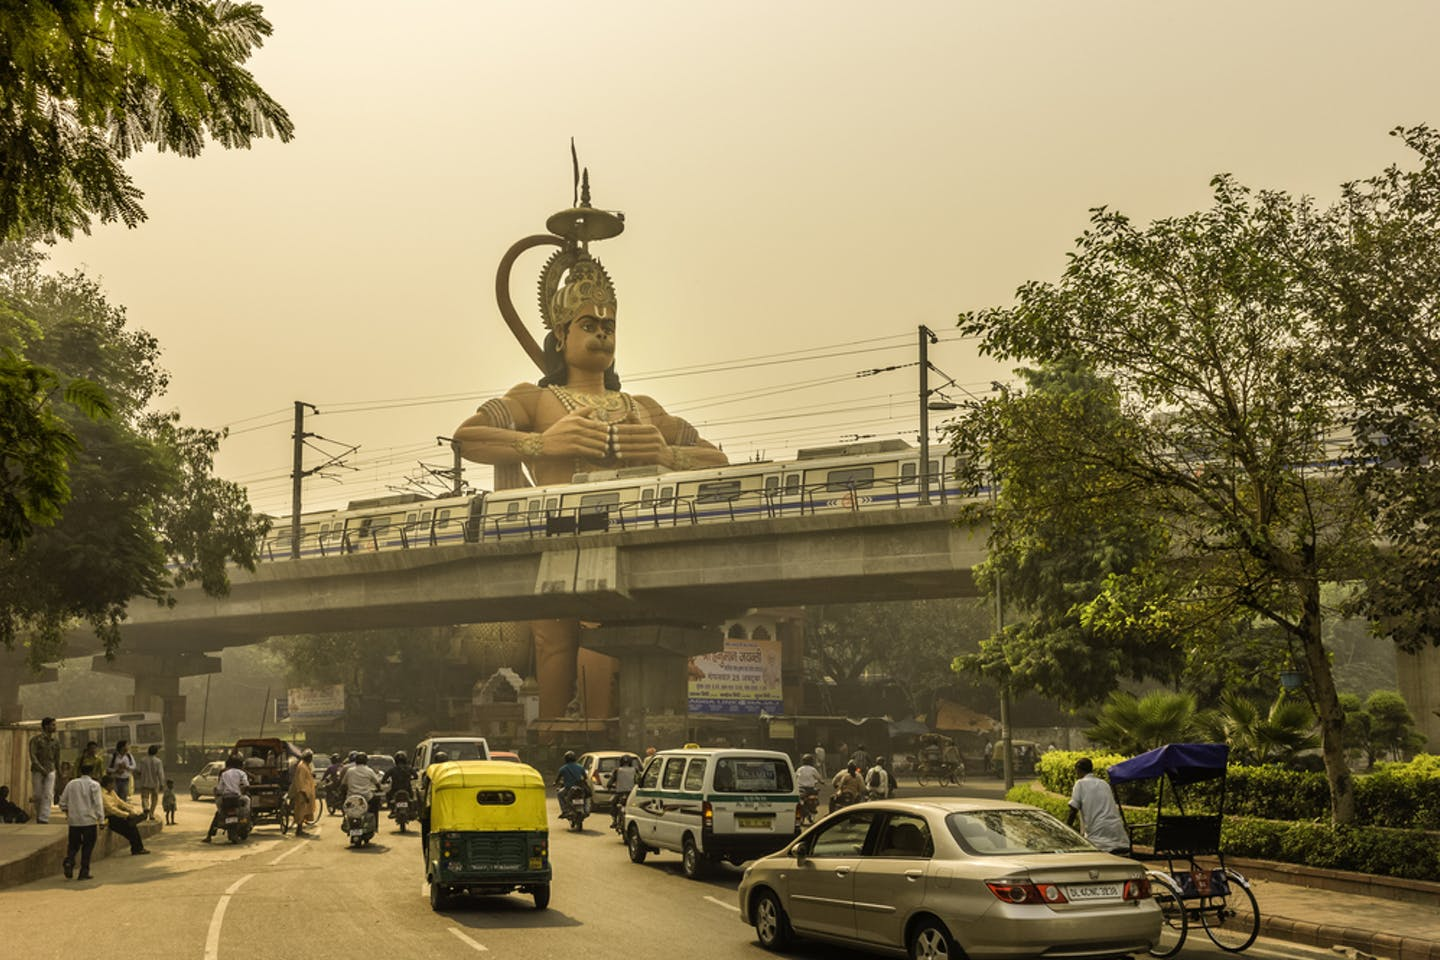 Delhi needs to breathe cleaner air